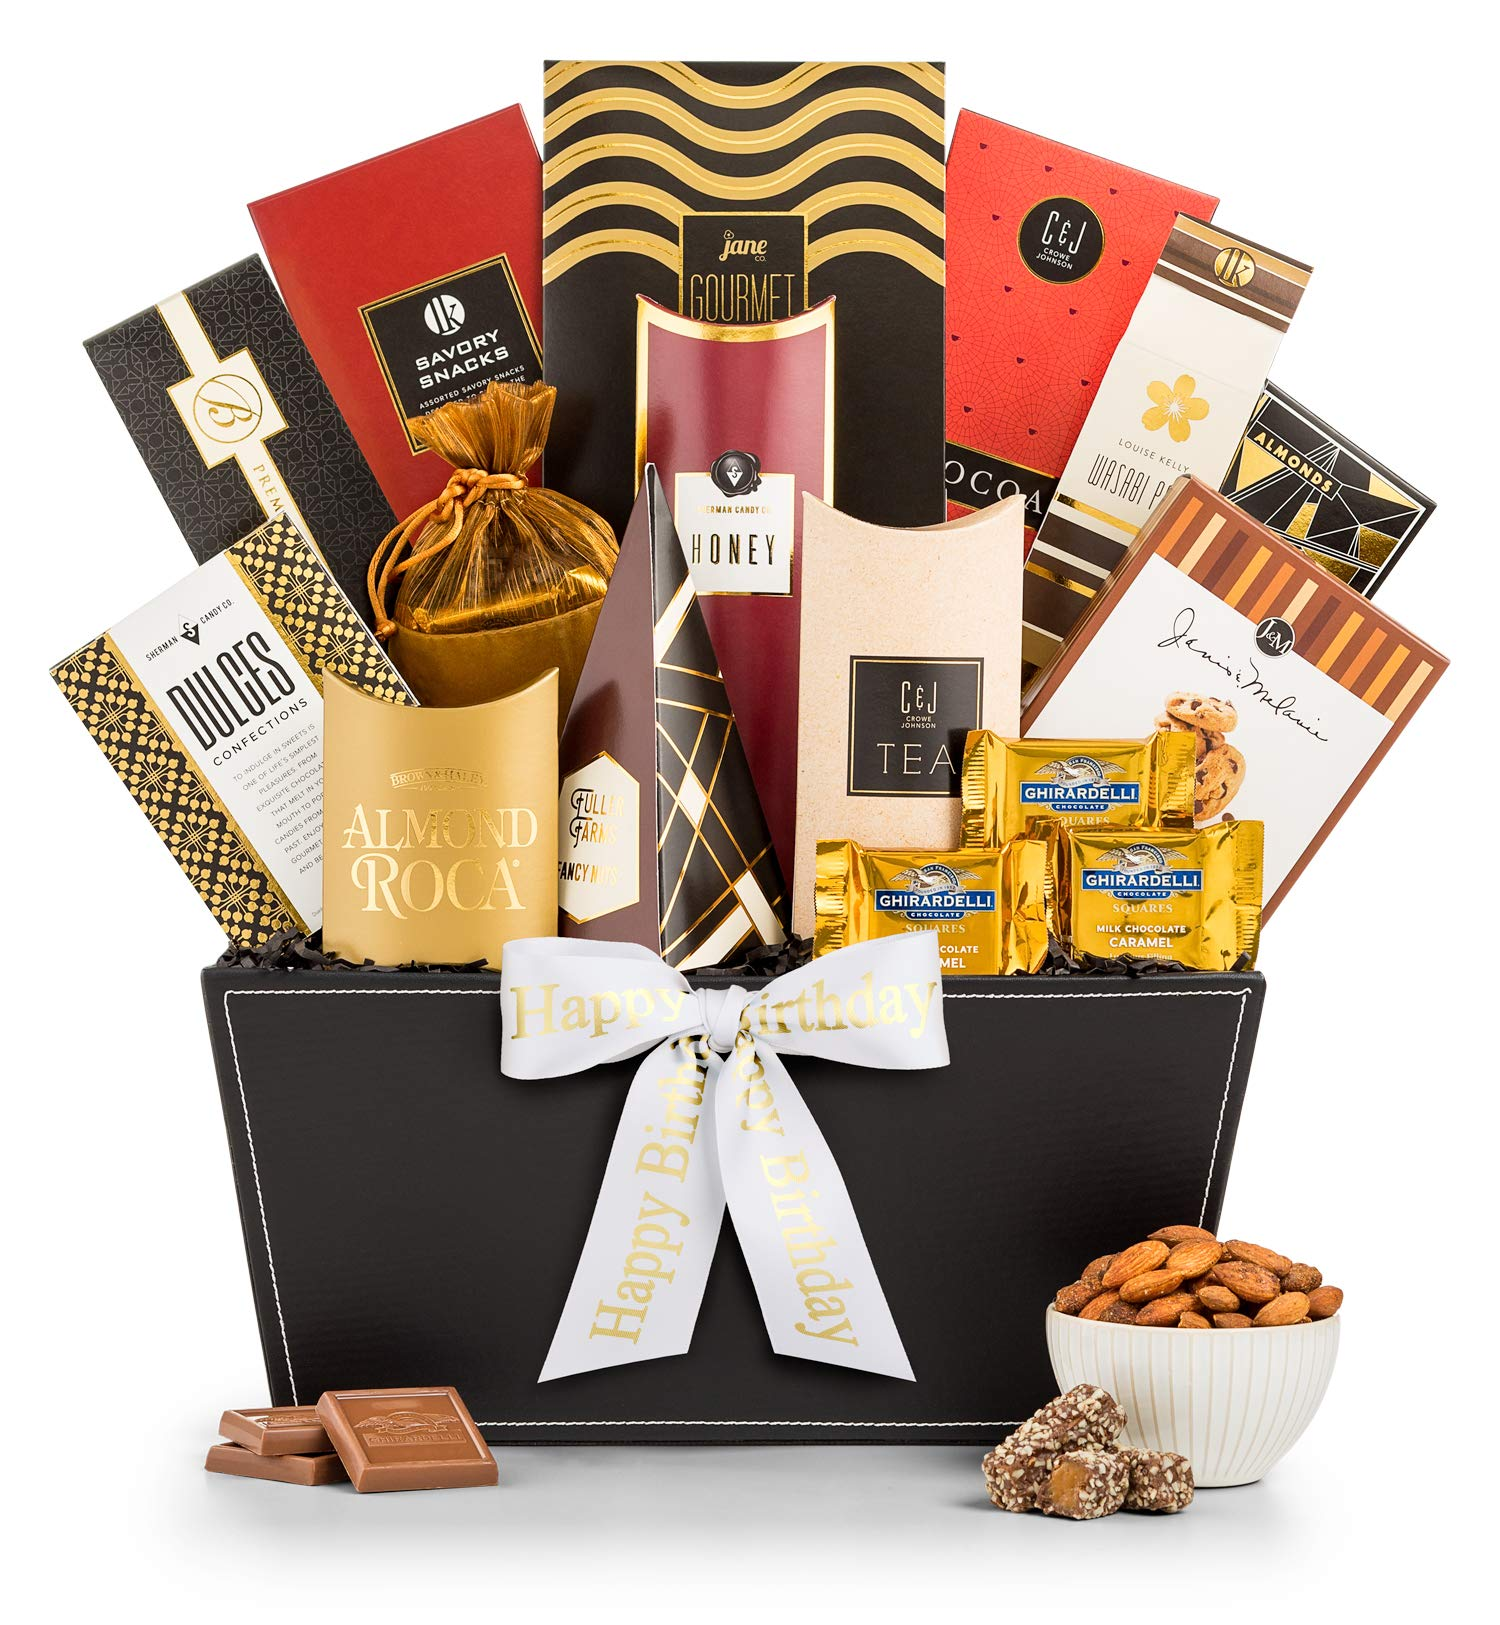 CDM product GiftTree Broadway Gourmet Happy Birthday Gift Basket   Premium Chocolate, Gourmet Cookies, Mixed Nuts & More   Perfect Way to Celebrate Their Special Day big image